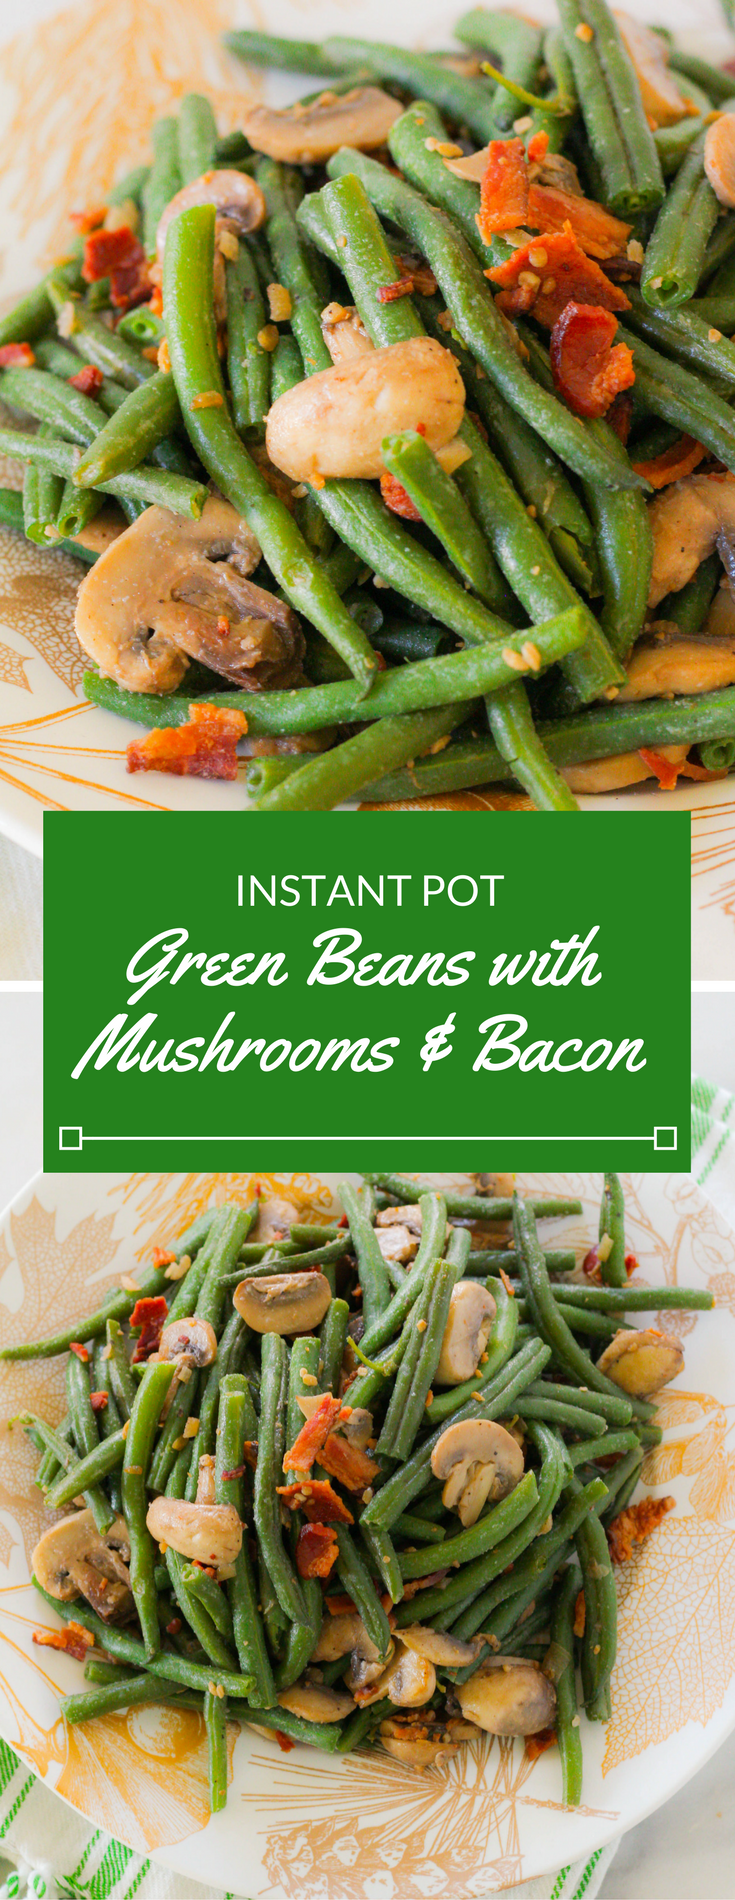 Instant Pot Green Beans with Mushrooms & Bacon | Green beans | Instant pot recipes | Thanksgiving | Holiday recipes | Vegetable side dish